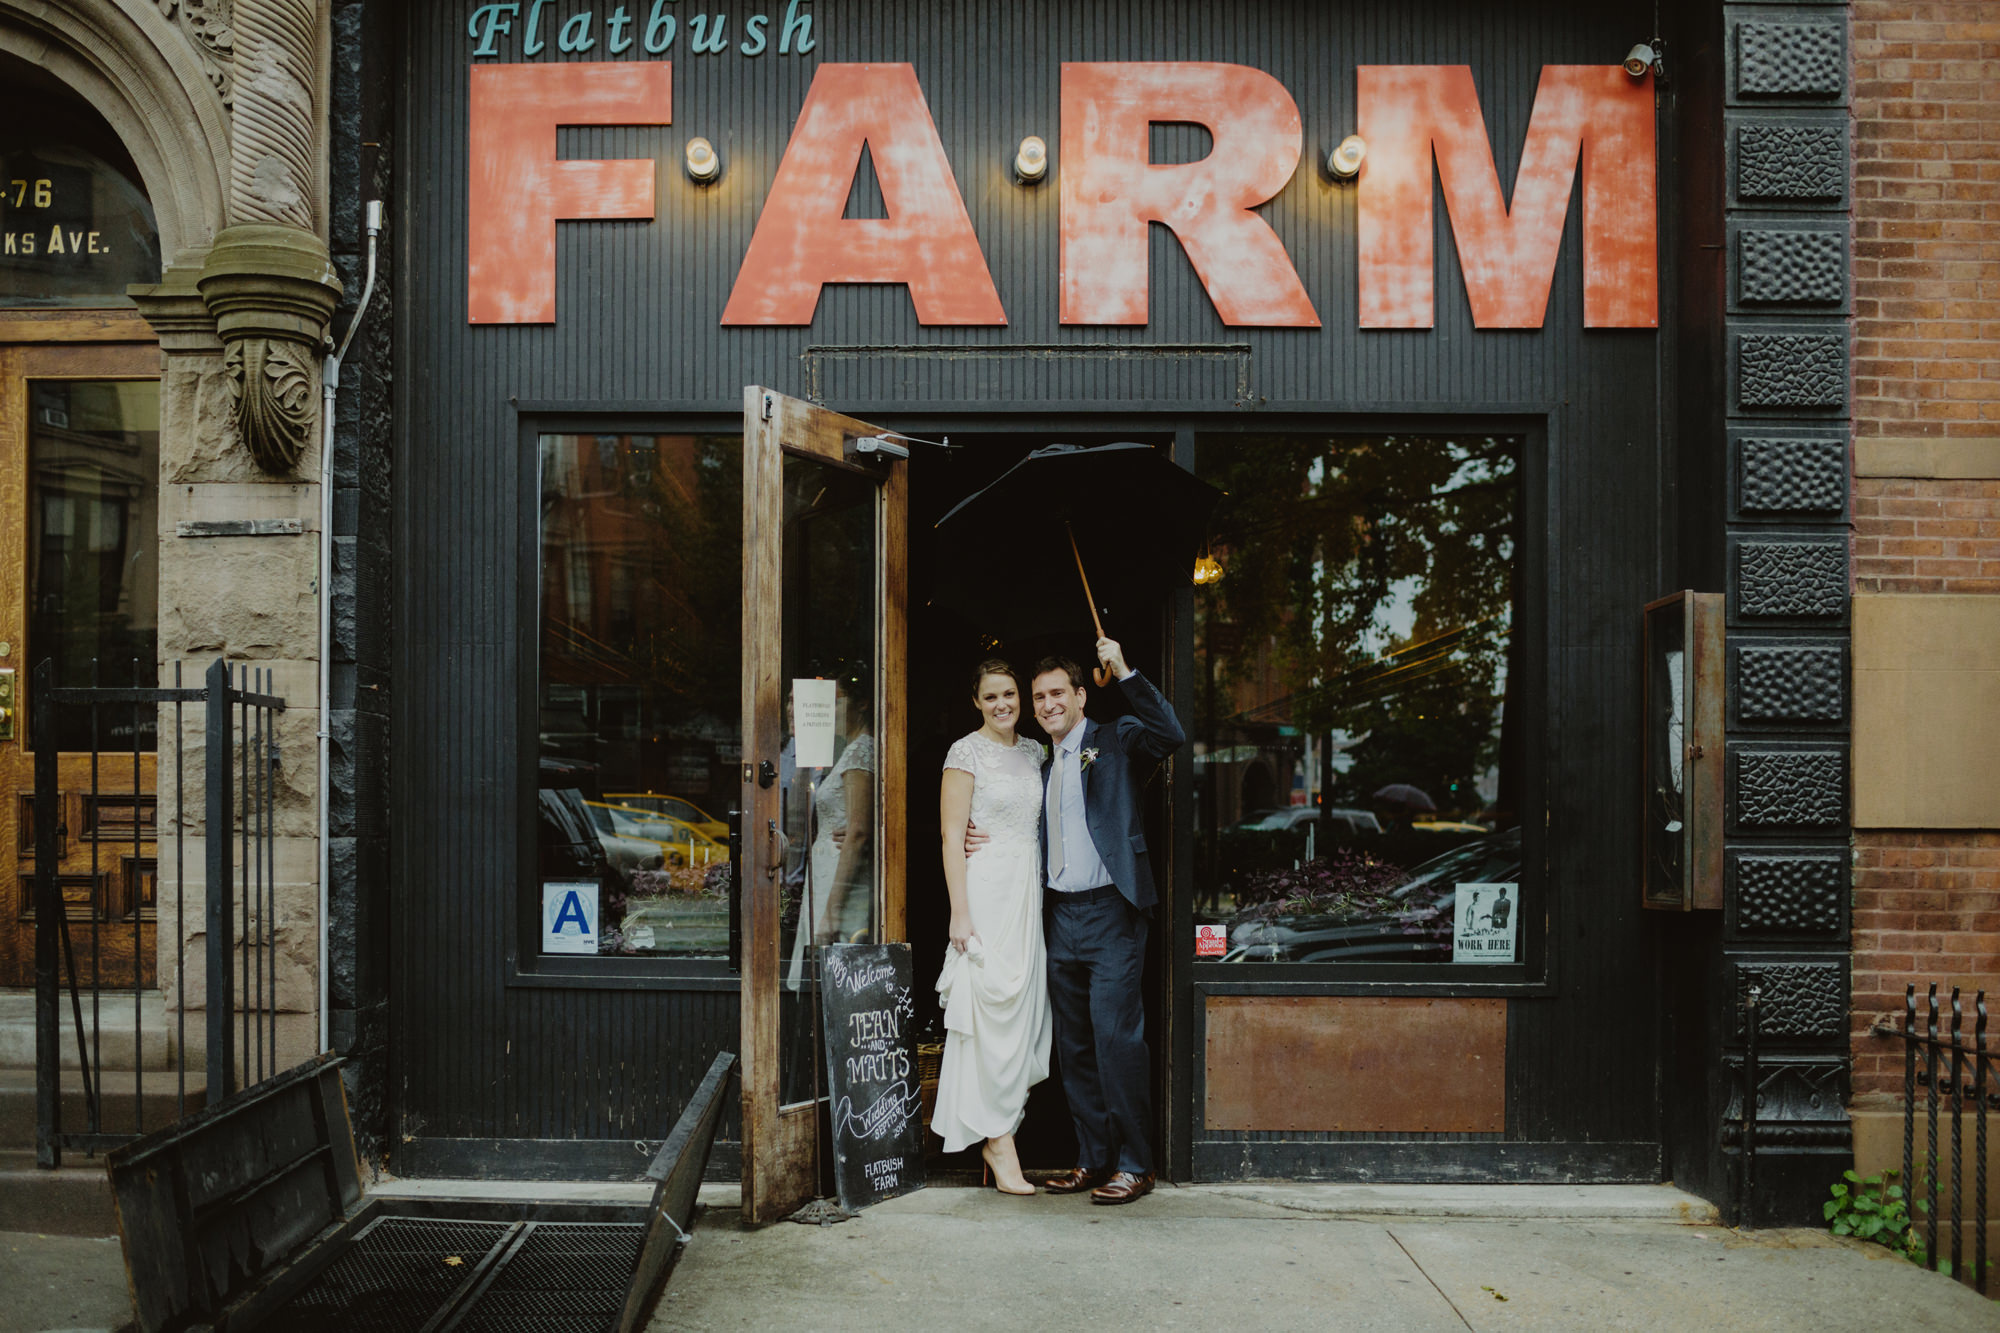 brooklyn_wedding_flatbushfarm_sammblake_023.jpg